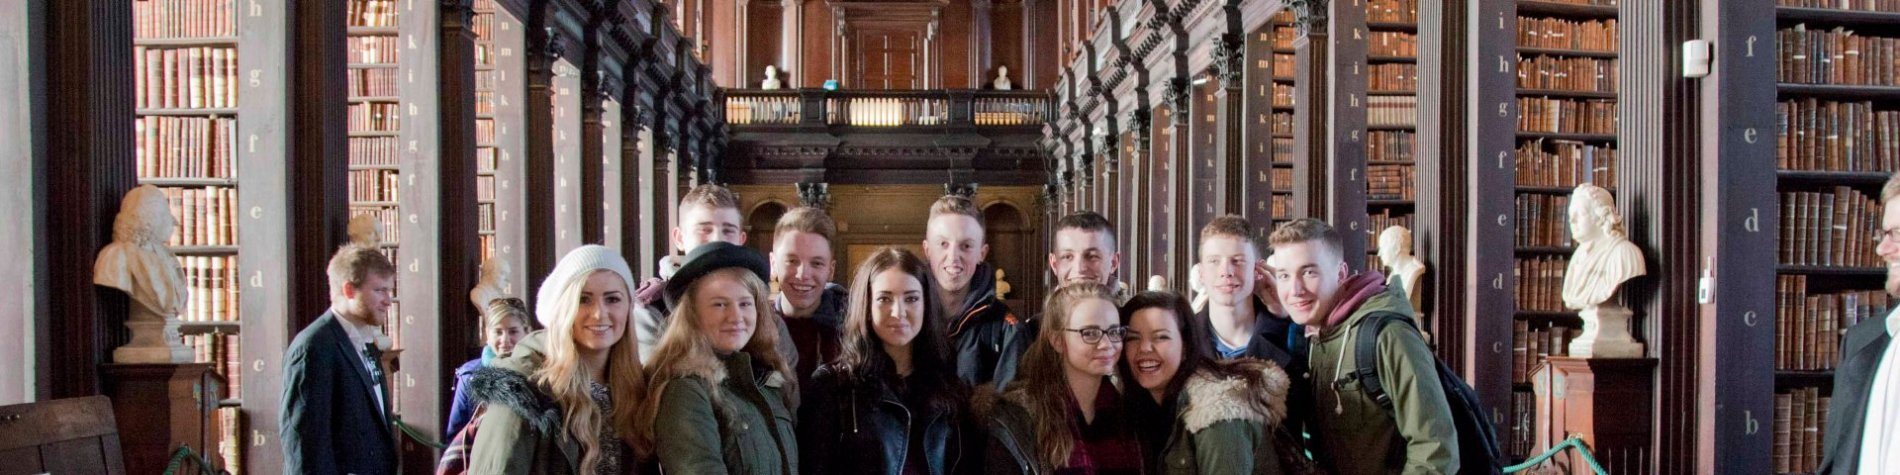 Group of students on a tour in Dublin at Trinity College Library